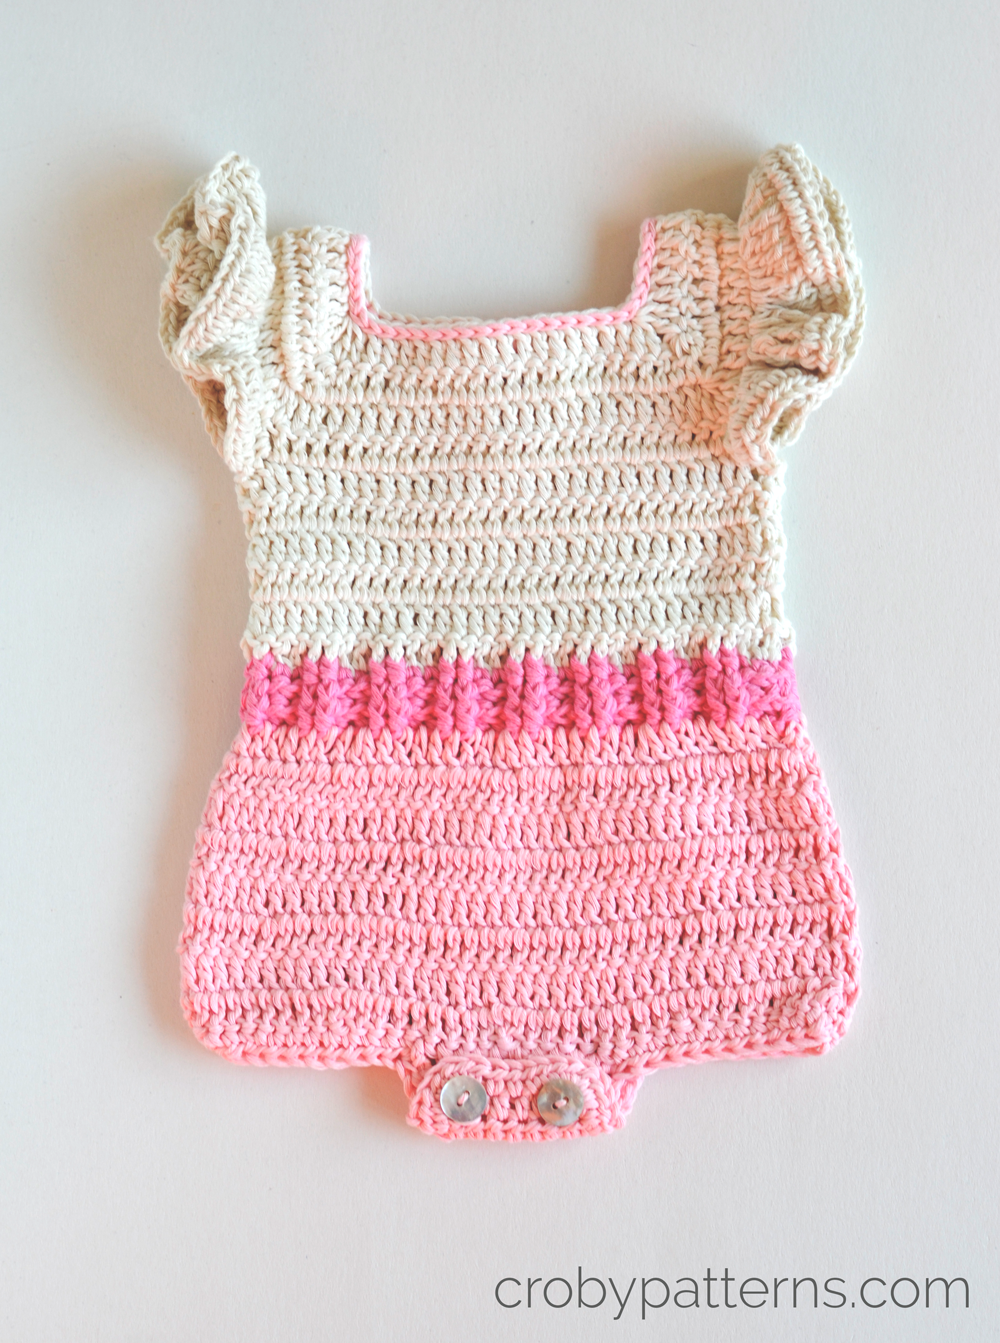 Crochet baby romper pink flamingo by croby patterns crafty crochet baby romper pink flamingo by croby patterns free bankloansurffo Choice Image